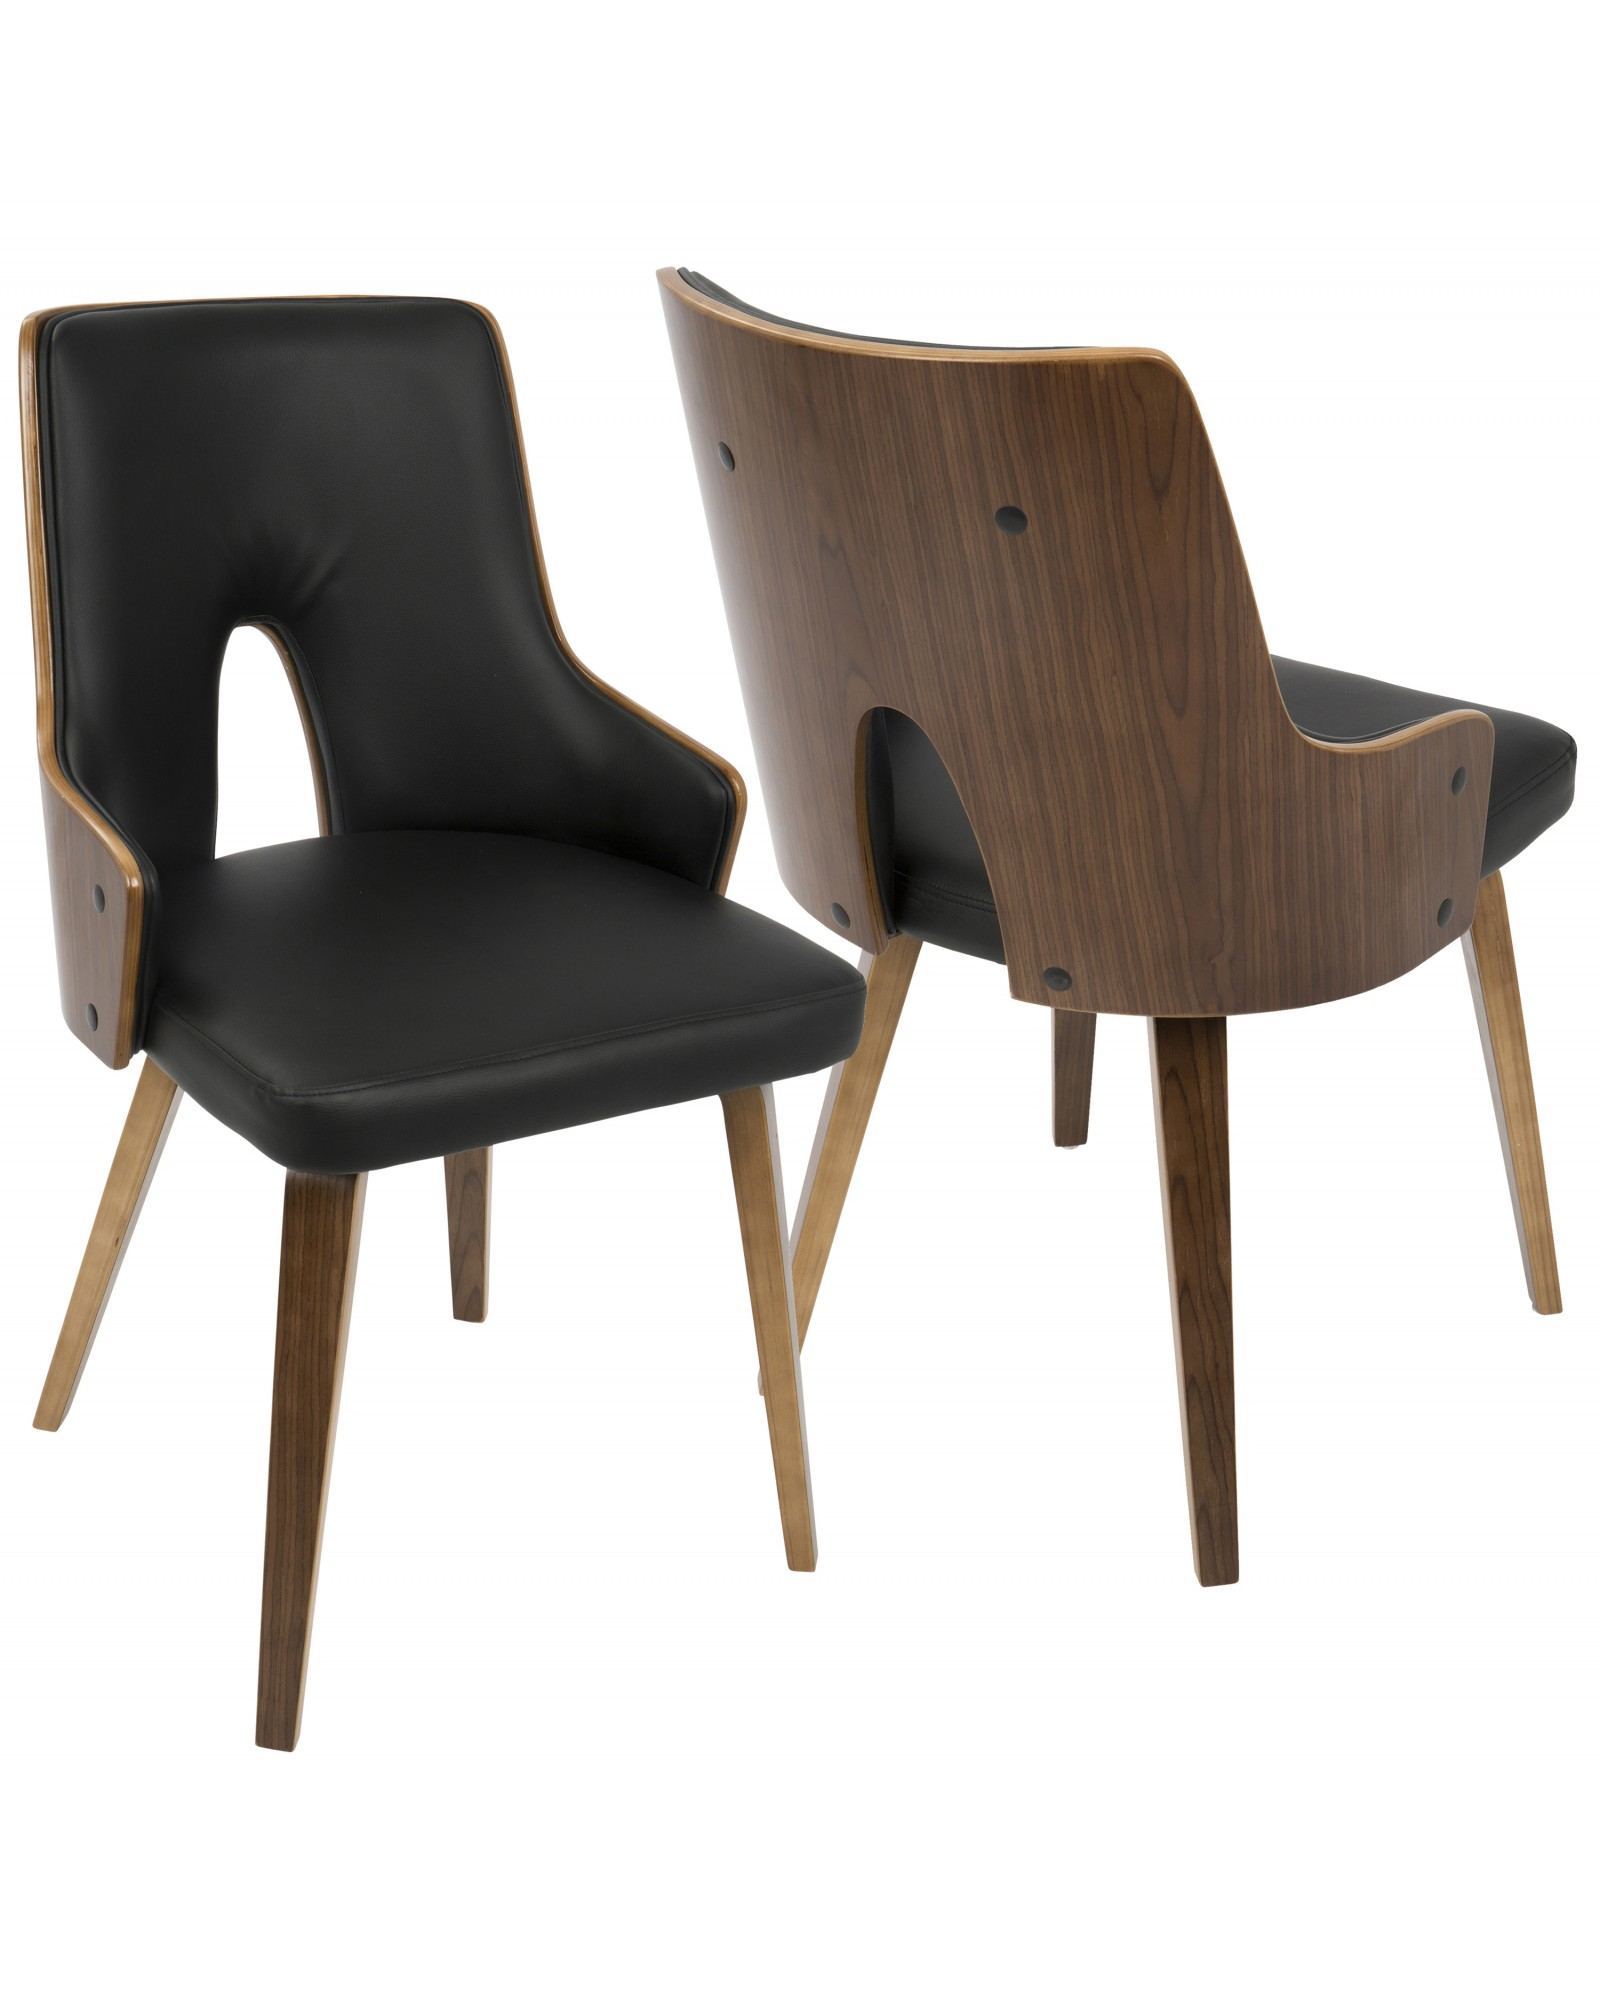 Stella Mid-Century Modern Dining/Accent Chair in Walnut with Black Faux Leather - Set of 2